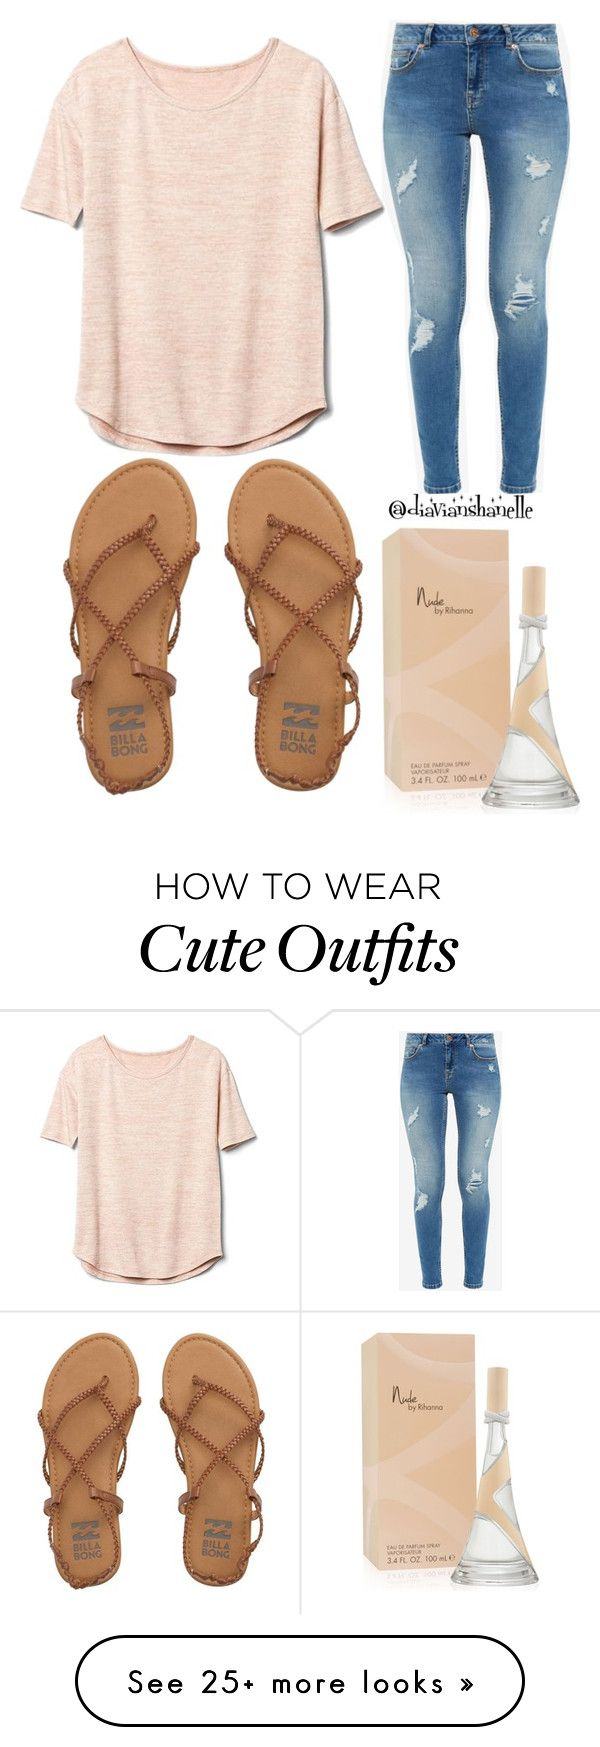 """Cute Beige Outfit"" by diavianshanelle on Polyvore featuring Gap, Billabong, Ted Baker, fabulous and glamorous"